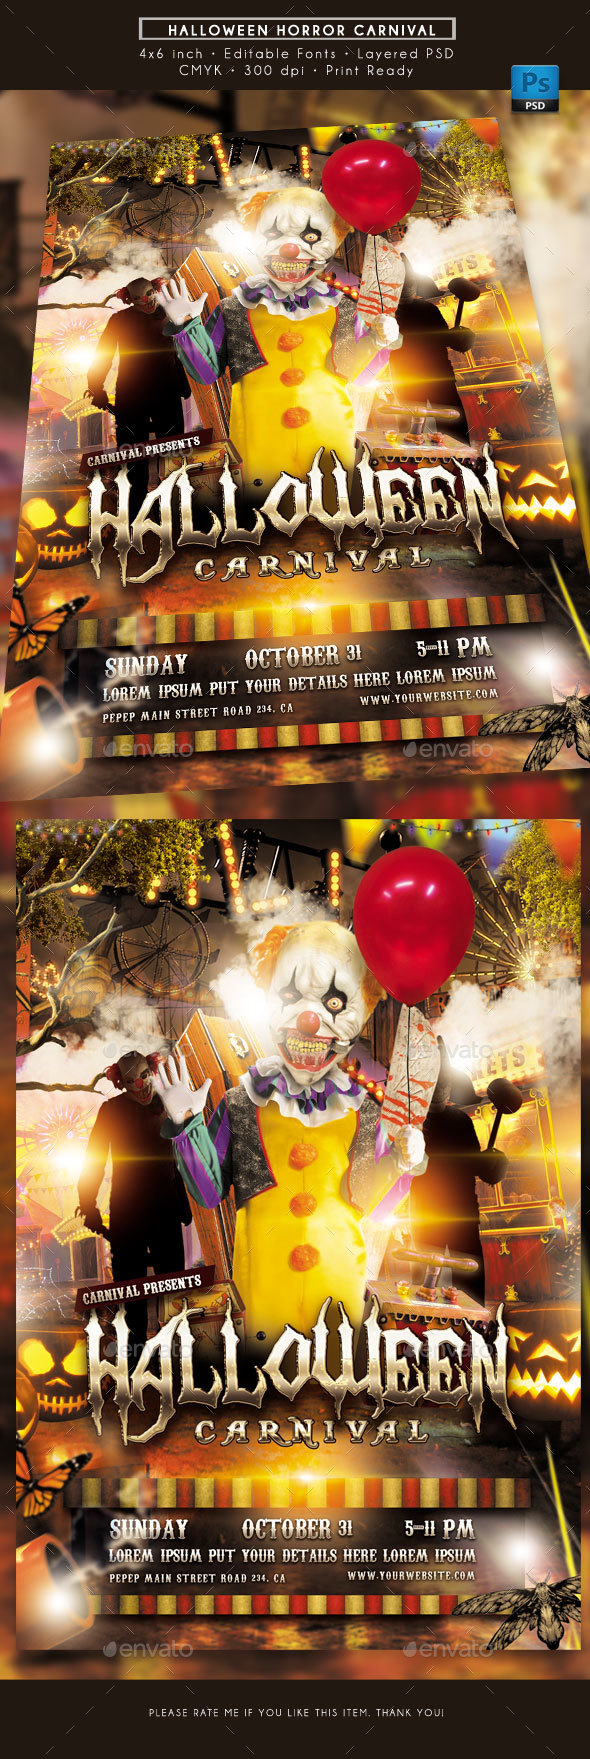 Halloween Horror Carnival Flyer - Events Flyers